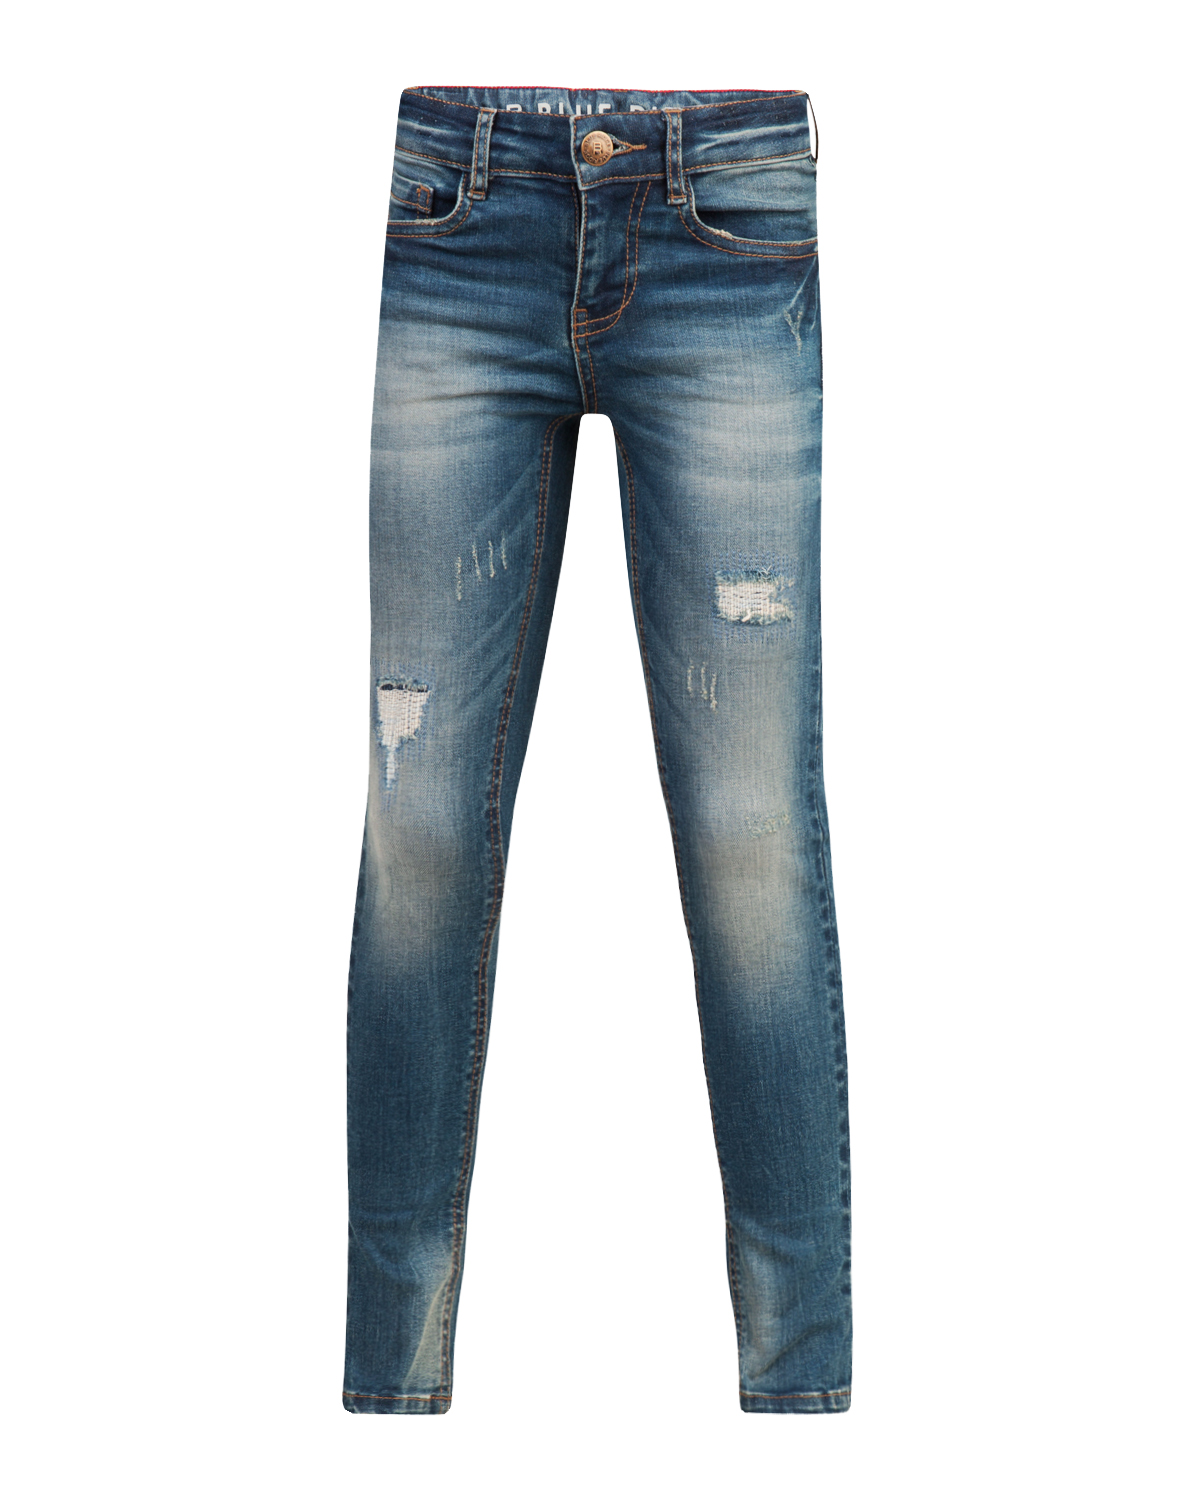 Meises super skinny repair power stretch jeans